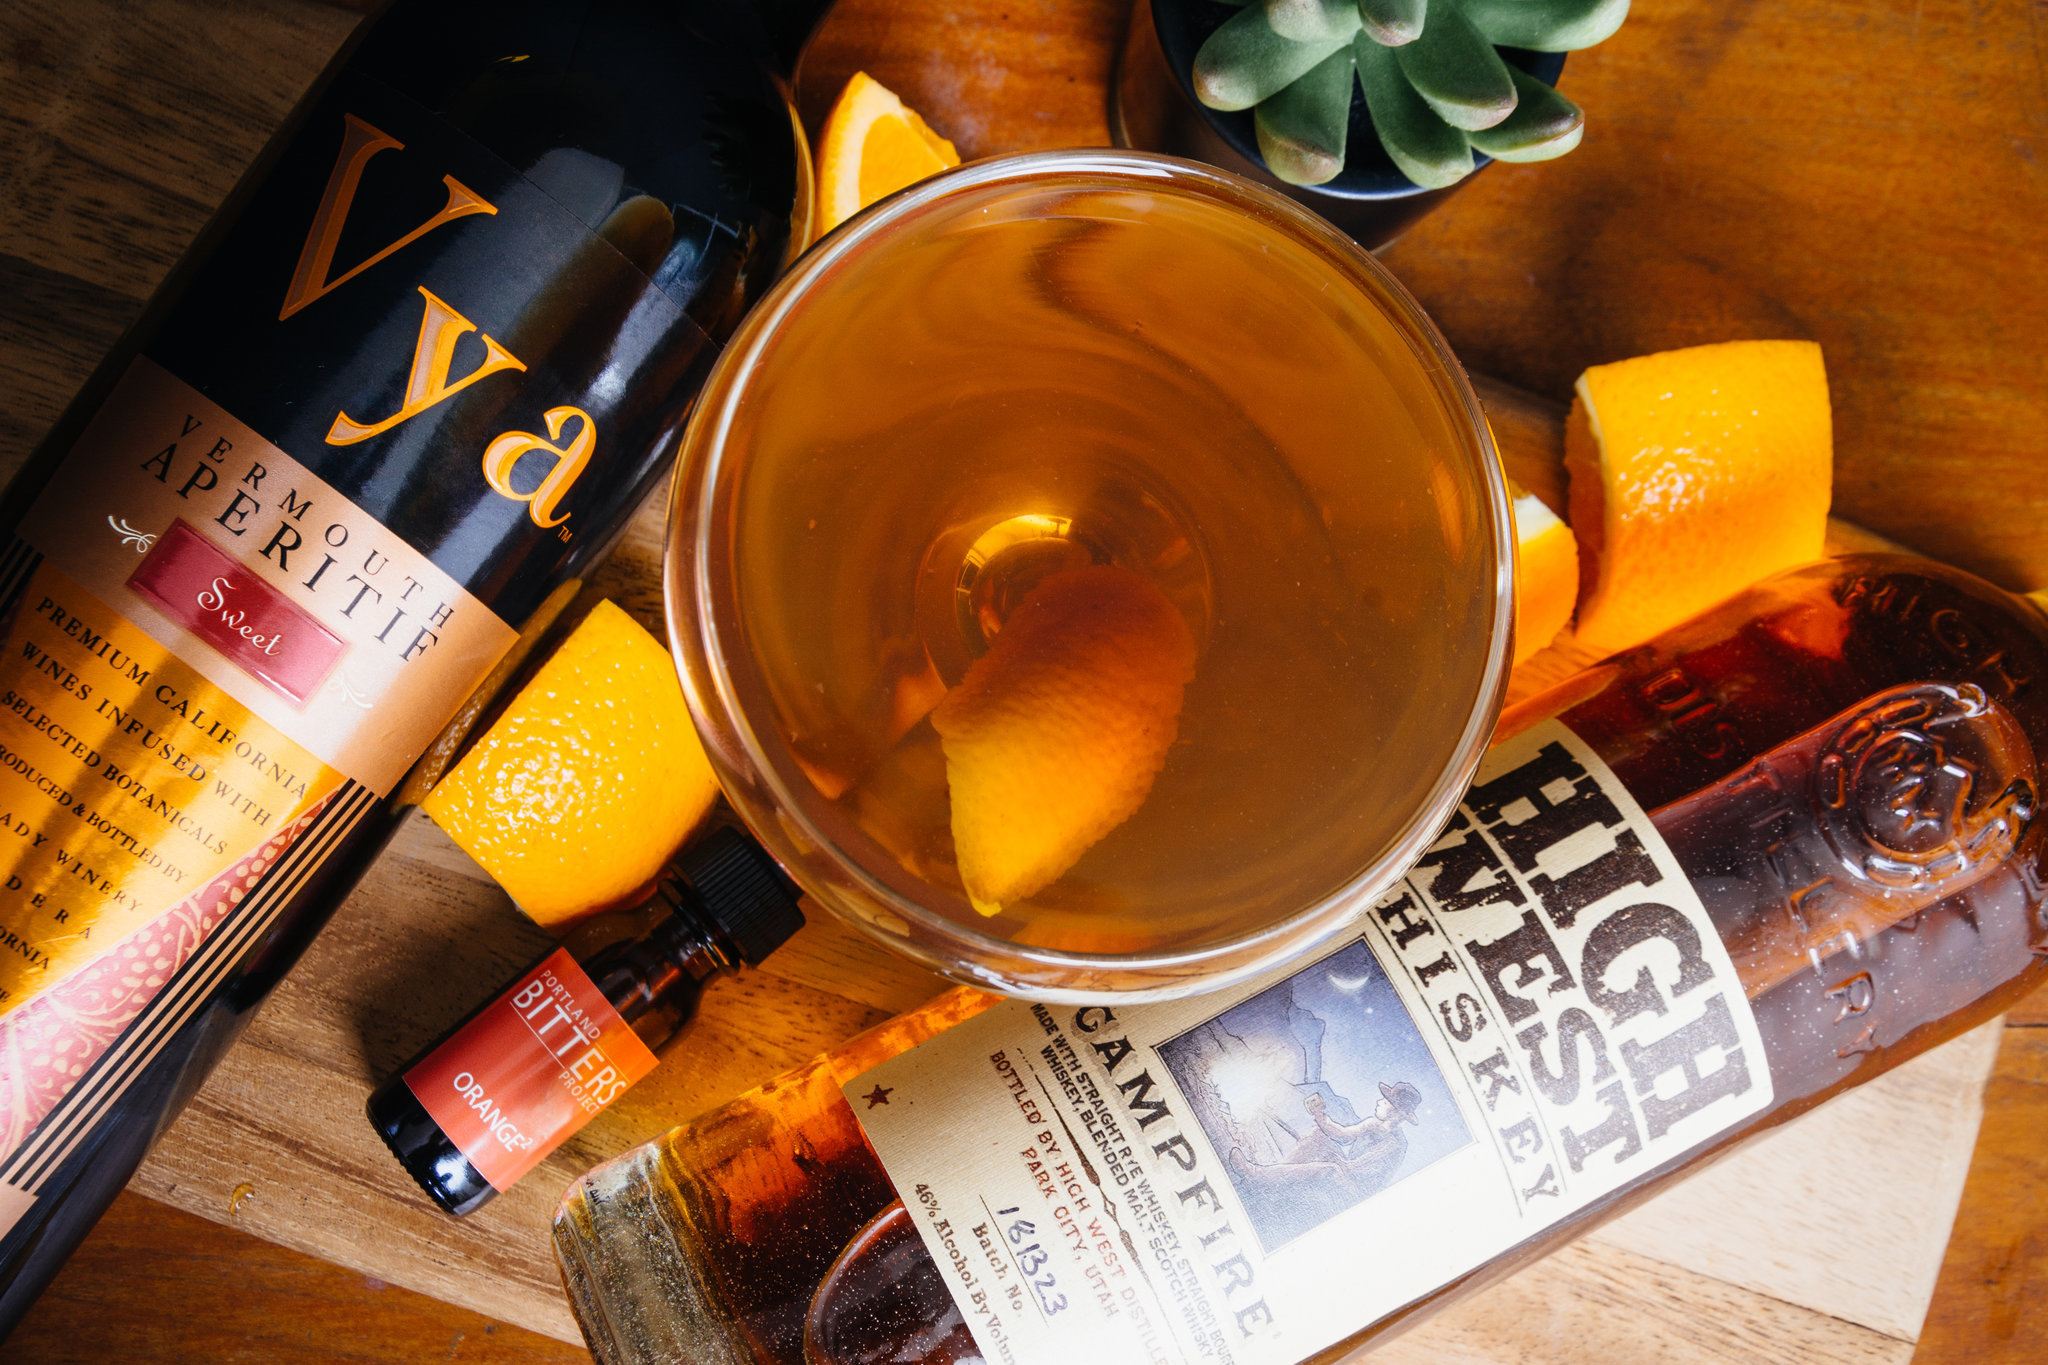 Friends and neighbors manhattan cocktail made with High West Campfire Whiskey and Vya Sweet Vermouth in a coupe glass with an orange peel garnish on a table next to a bottle of Vya Sweet Vermouth, High West Whiskey, Bitters and orange slices.